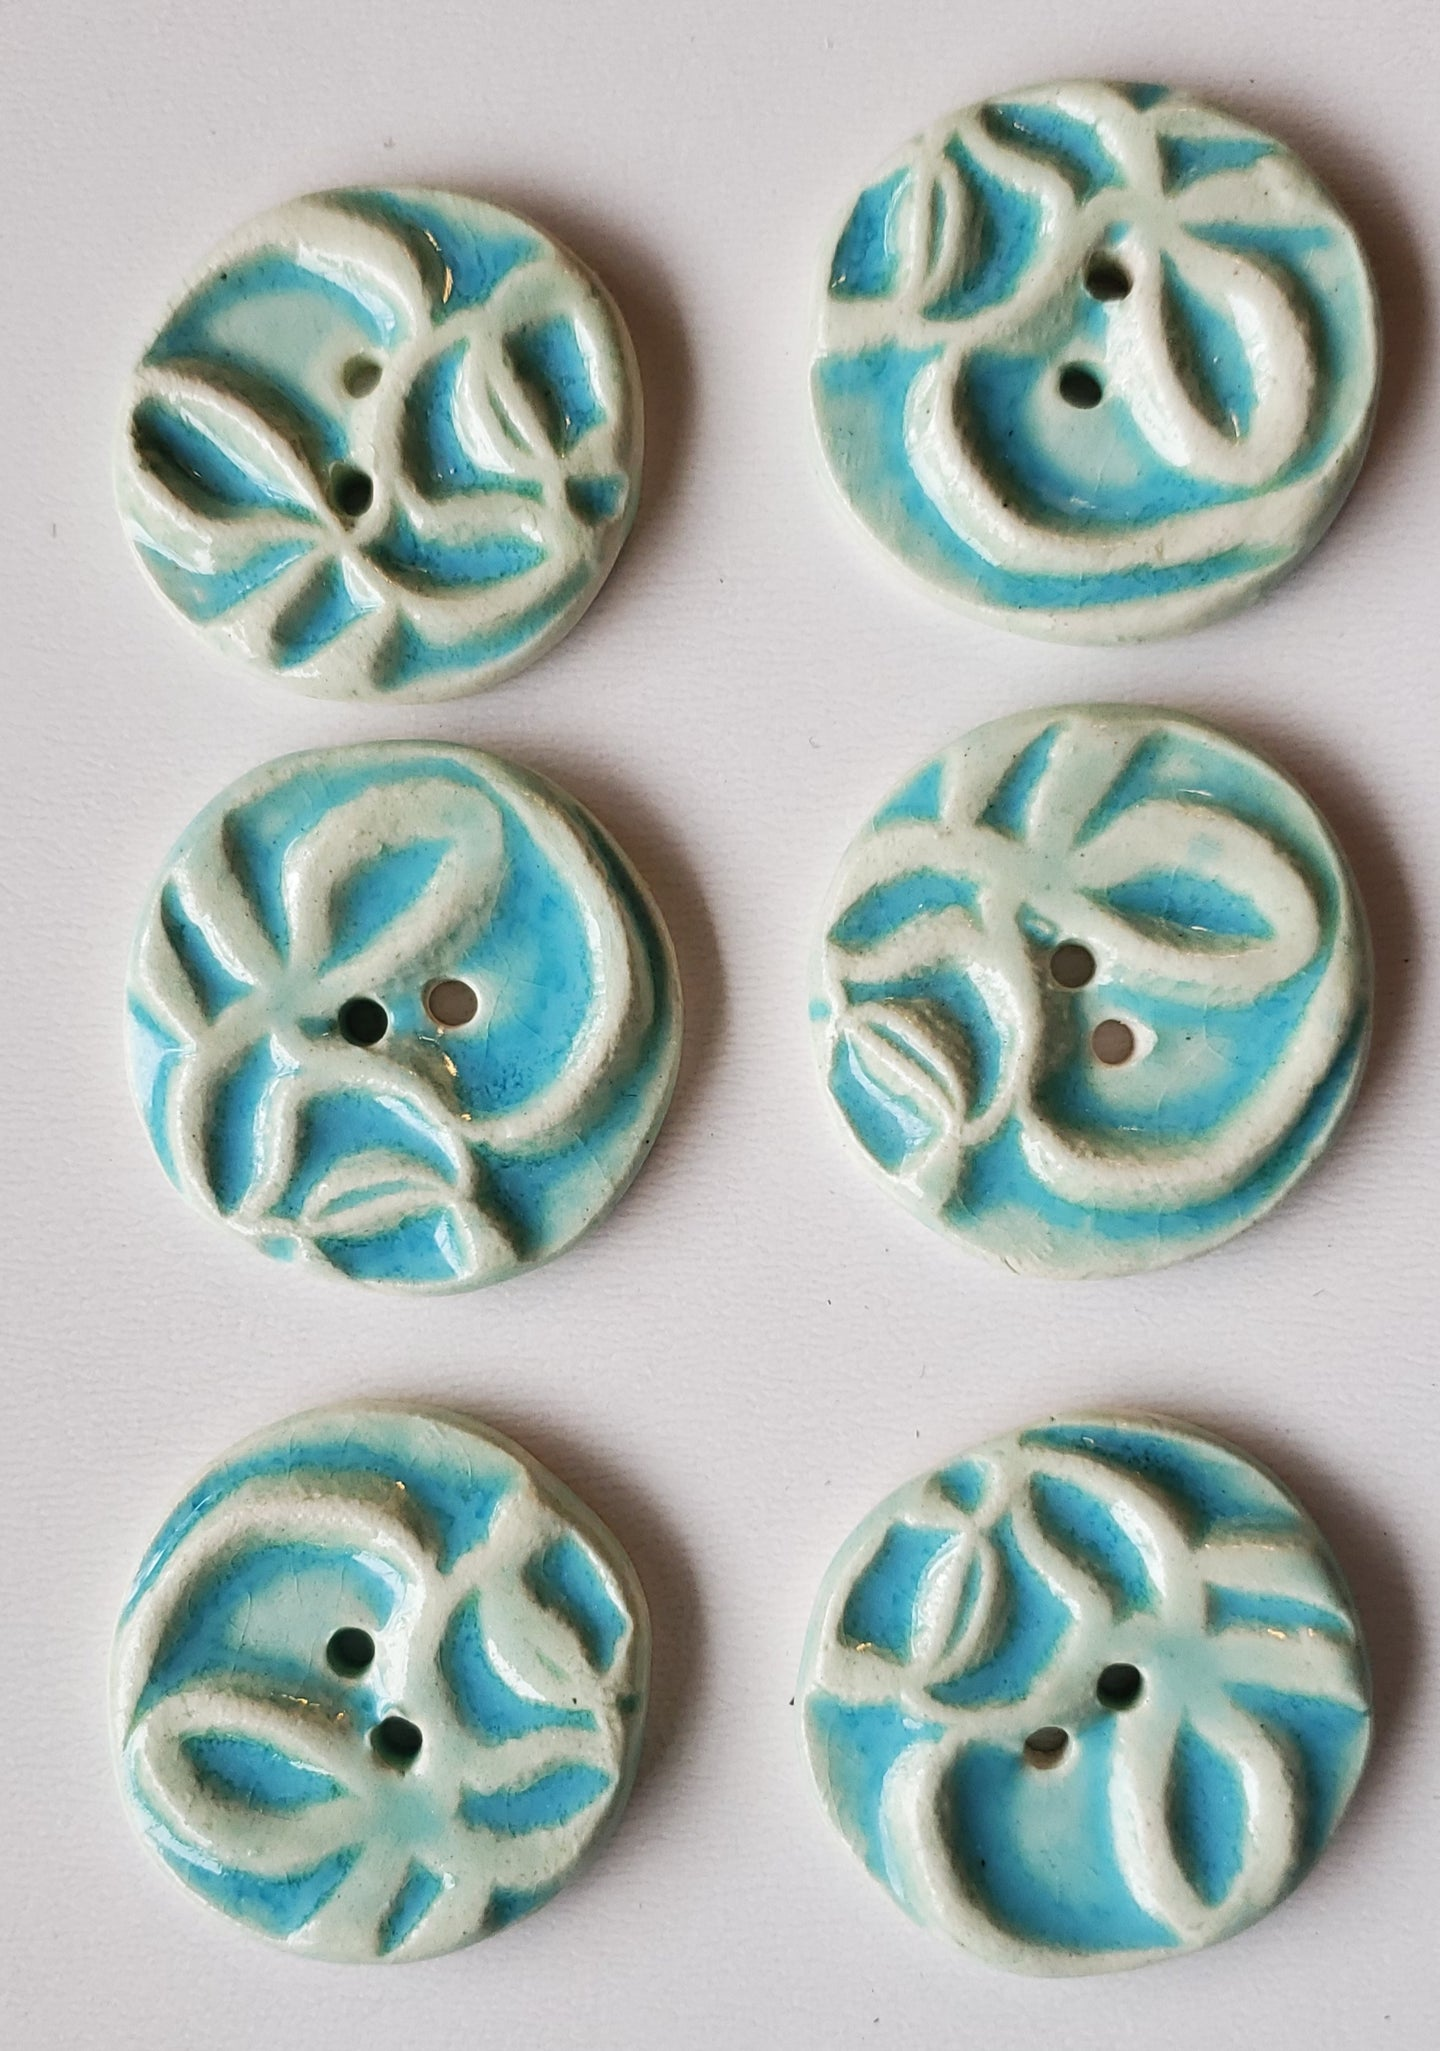 6  1 inch hand made ceramic buttons turquoise